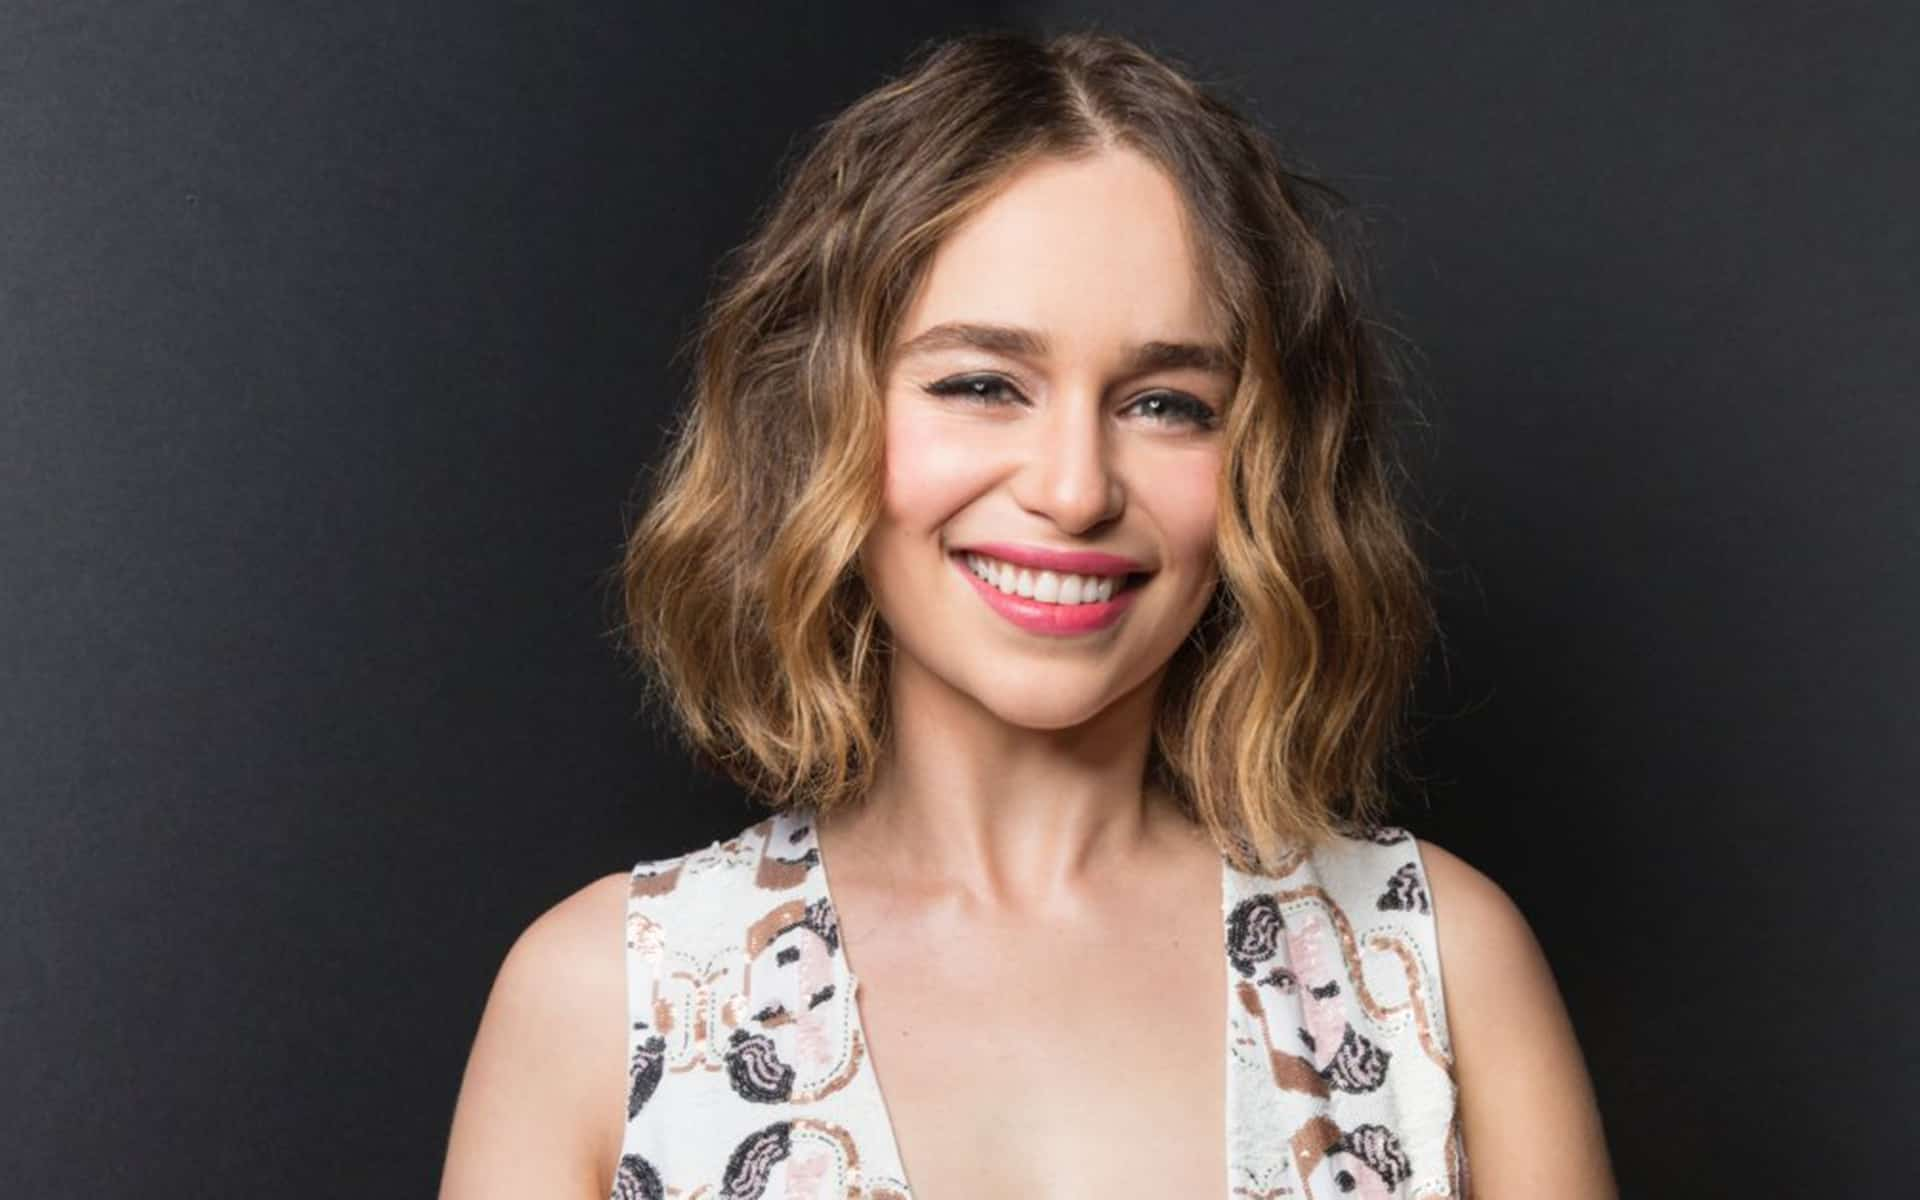 Car Games 2016 >> Emilia Clarke Wallpapers Images Pictures for Desktop High Quality